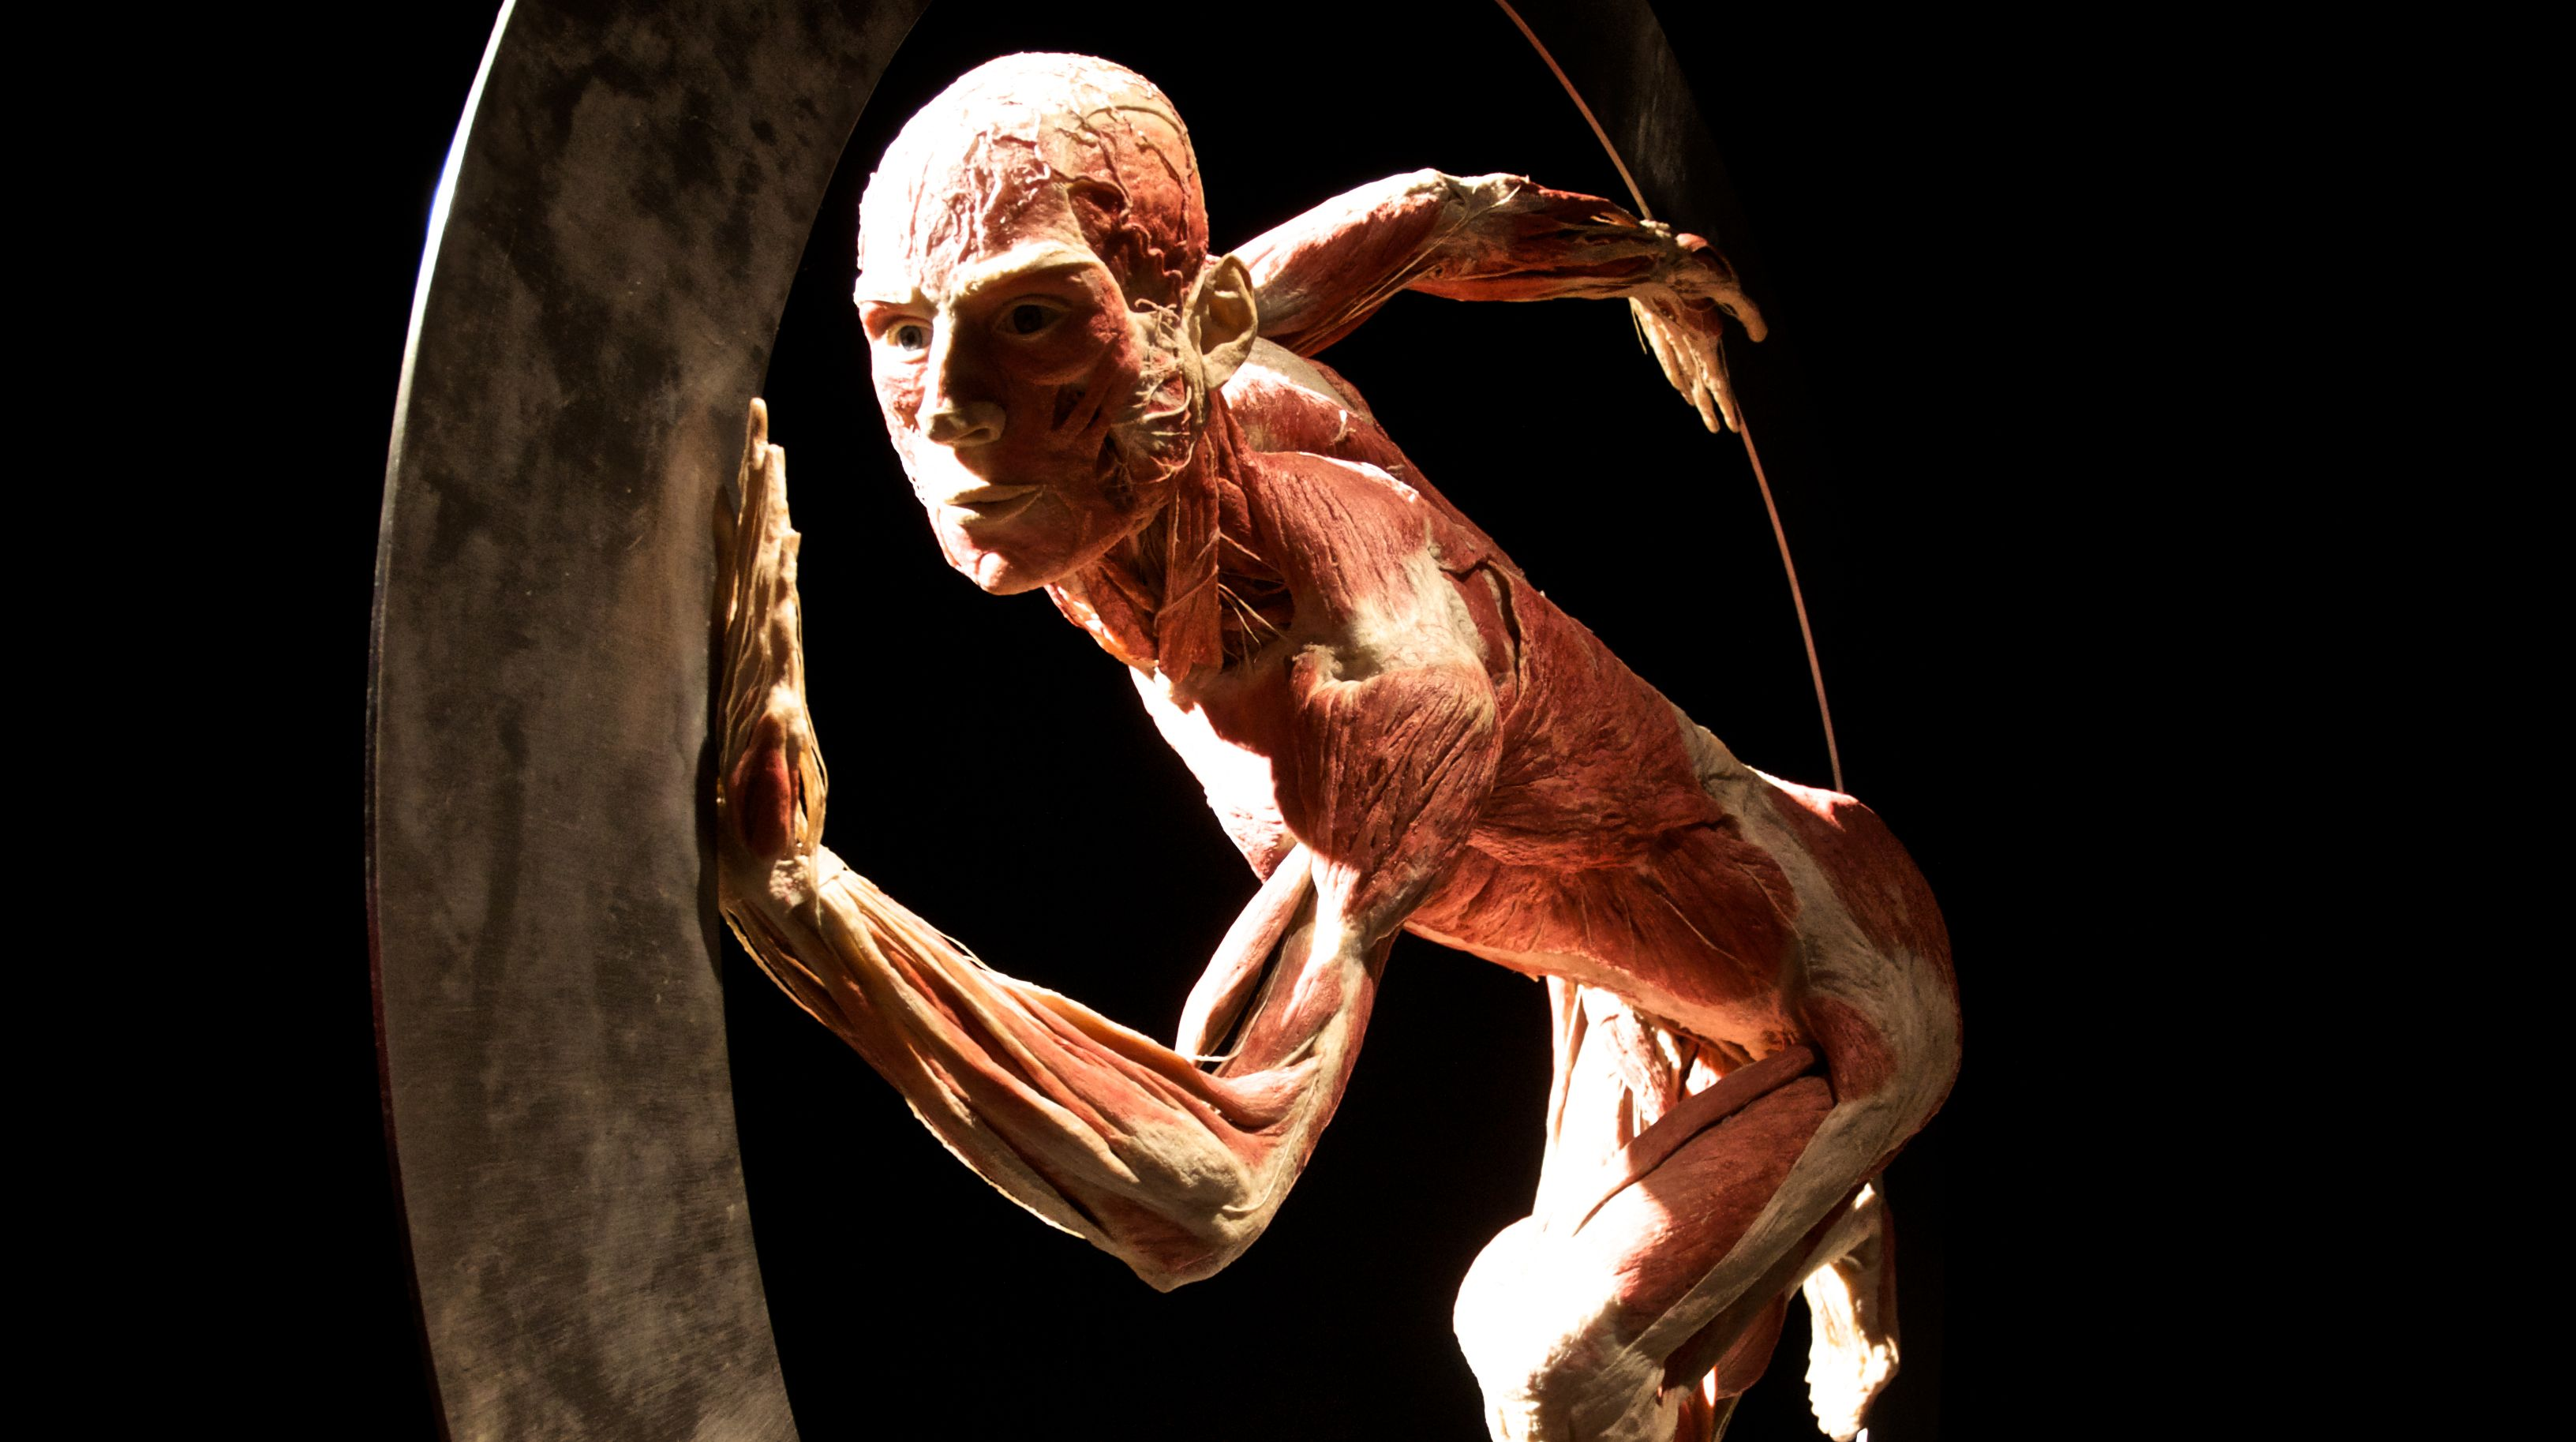 Human Body Images Art